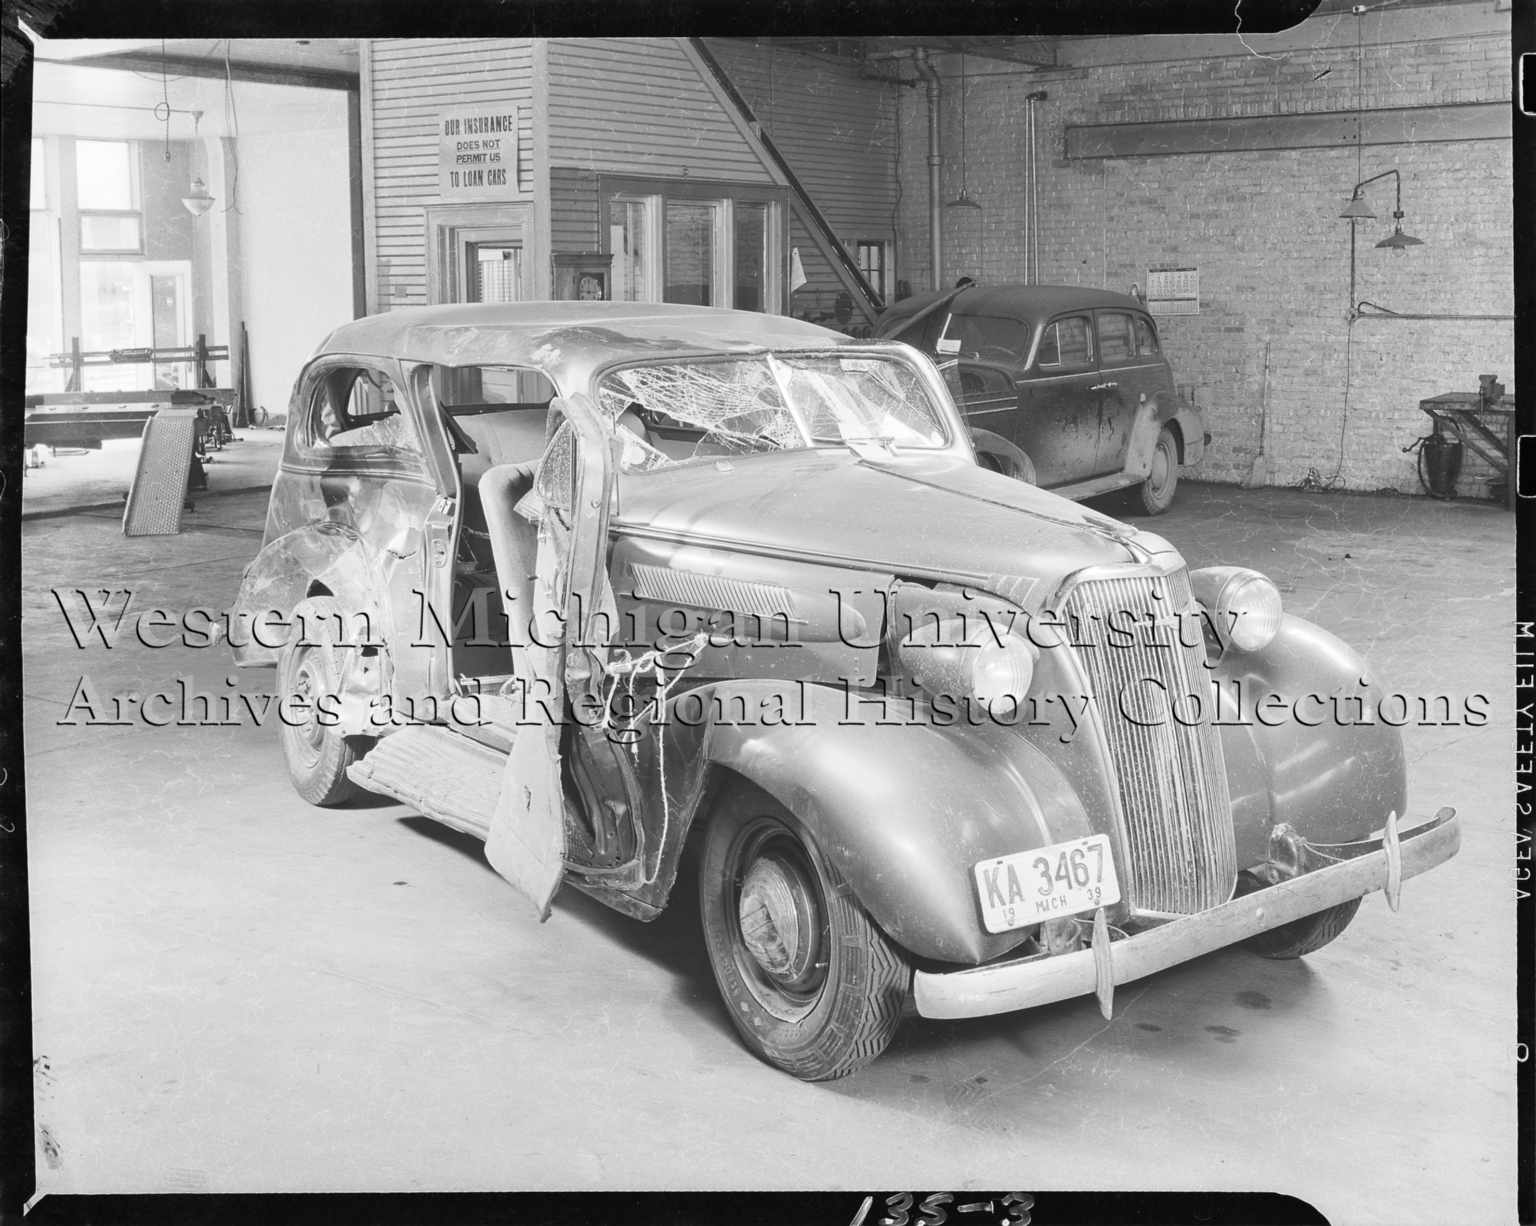 1937 Chevrolet car, after accident, at service center